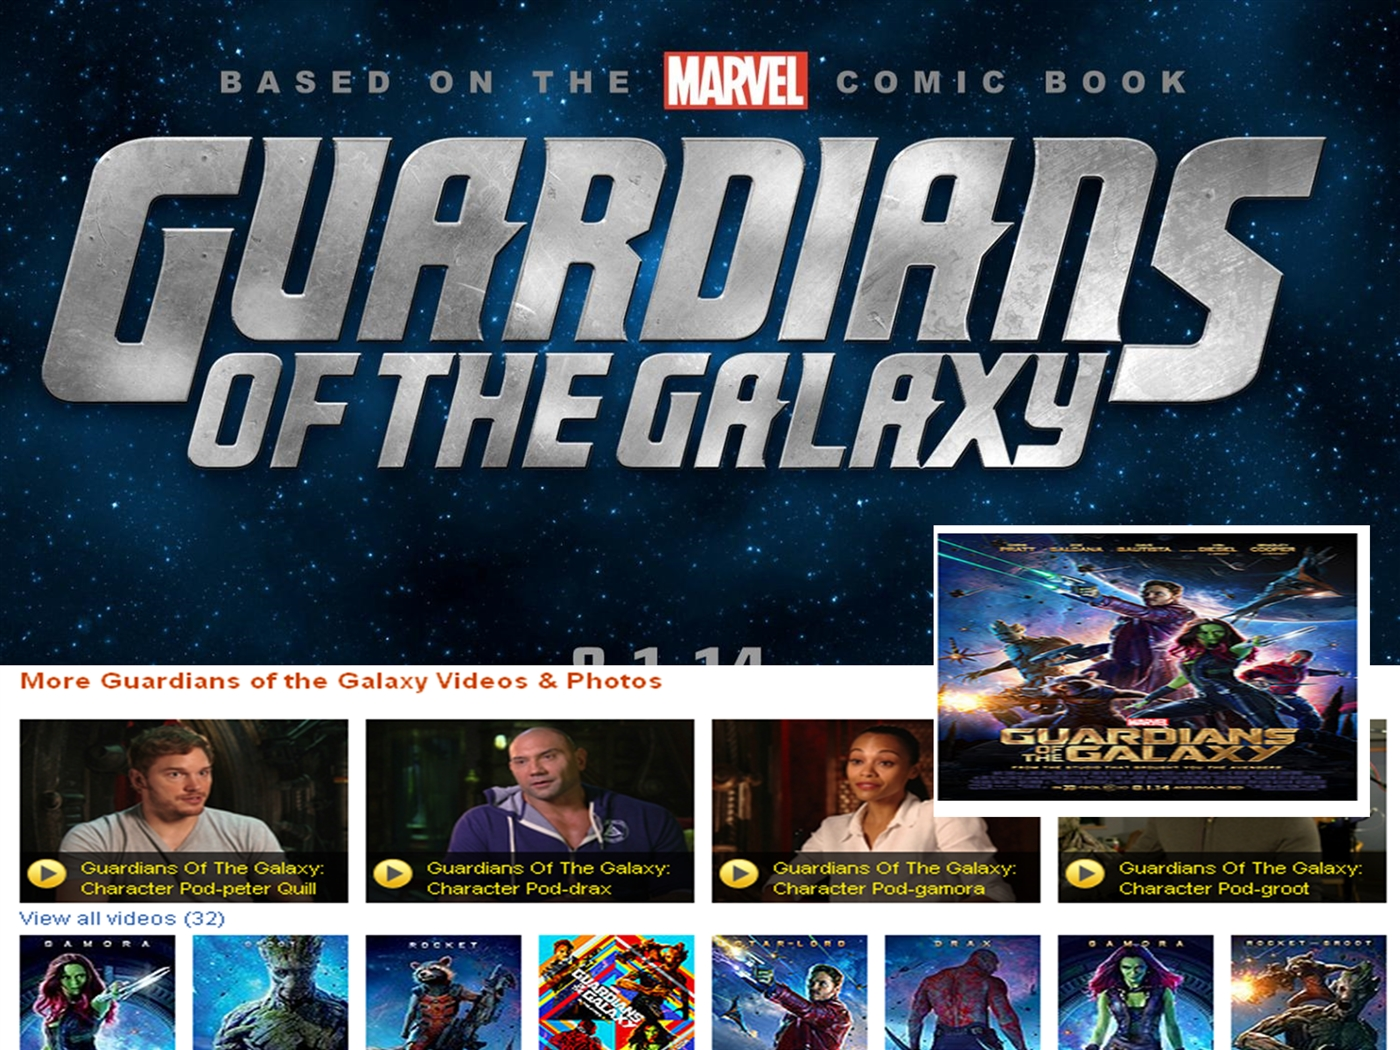 Guardians of the galaxy 2014pptx powerpoint presentation ppt toneelgroepblik Image collections